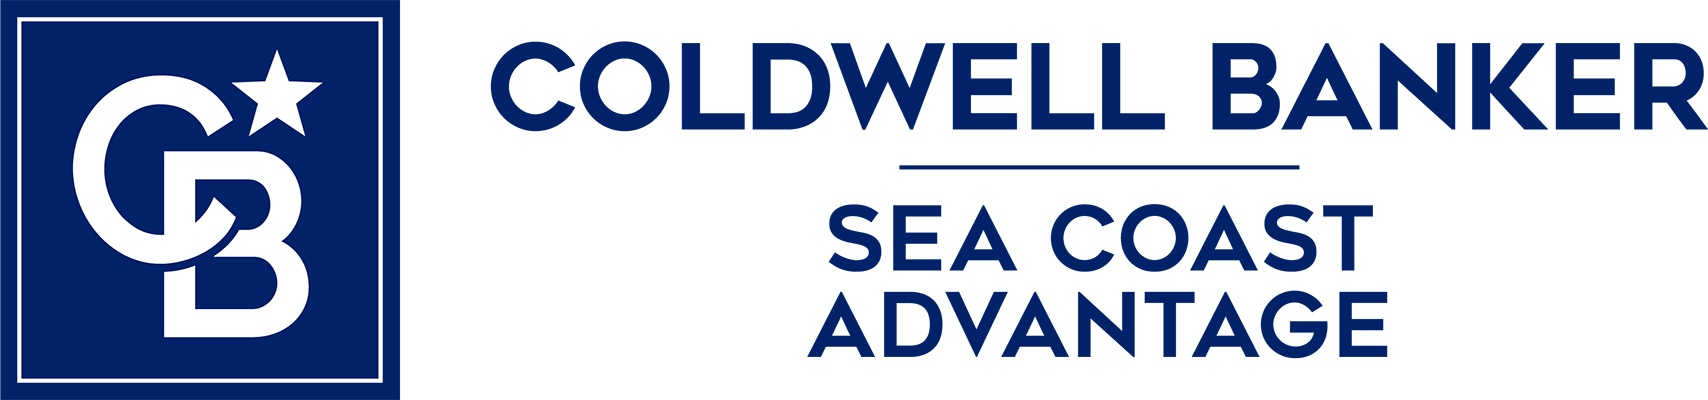 Robin Atkins - Coldwell Banker Sea Coast Advantage Realty